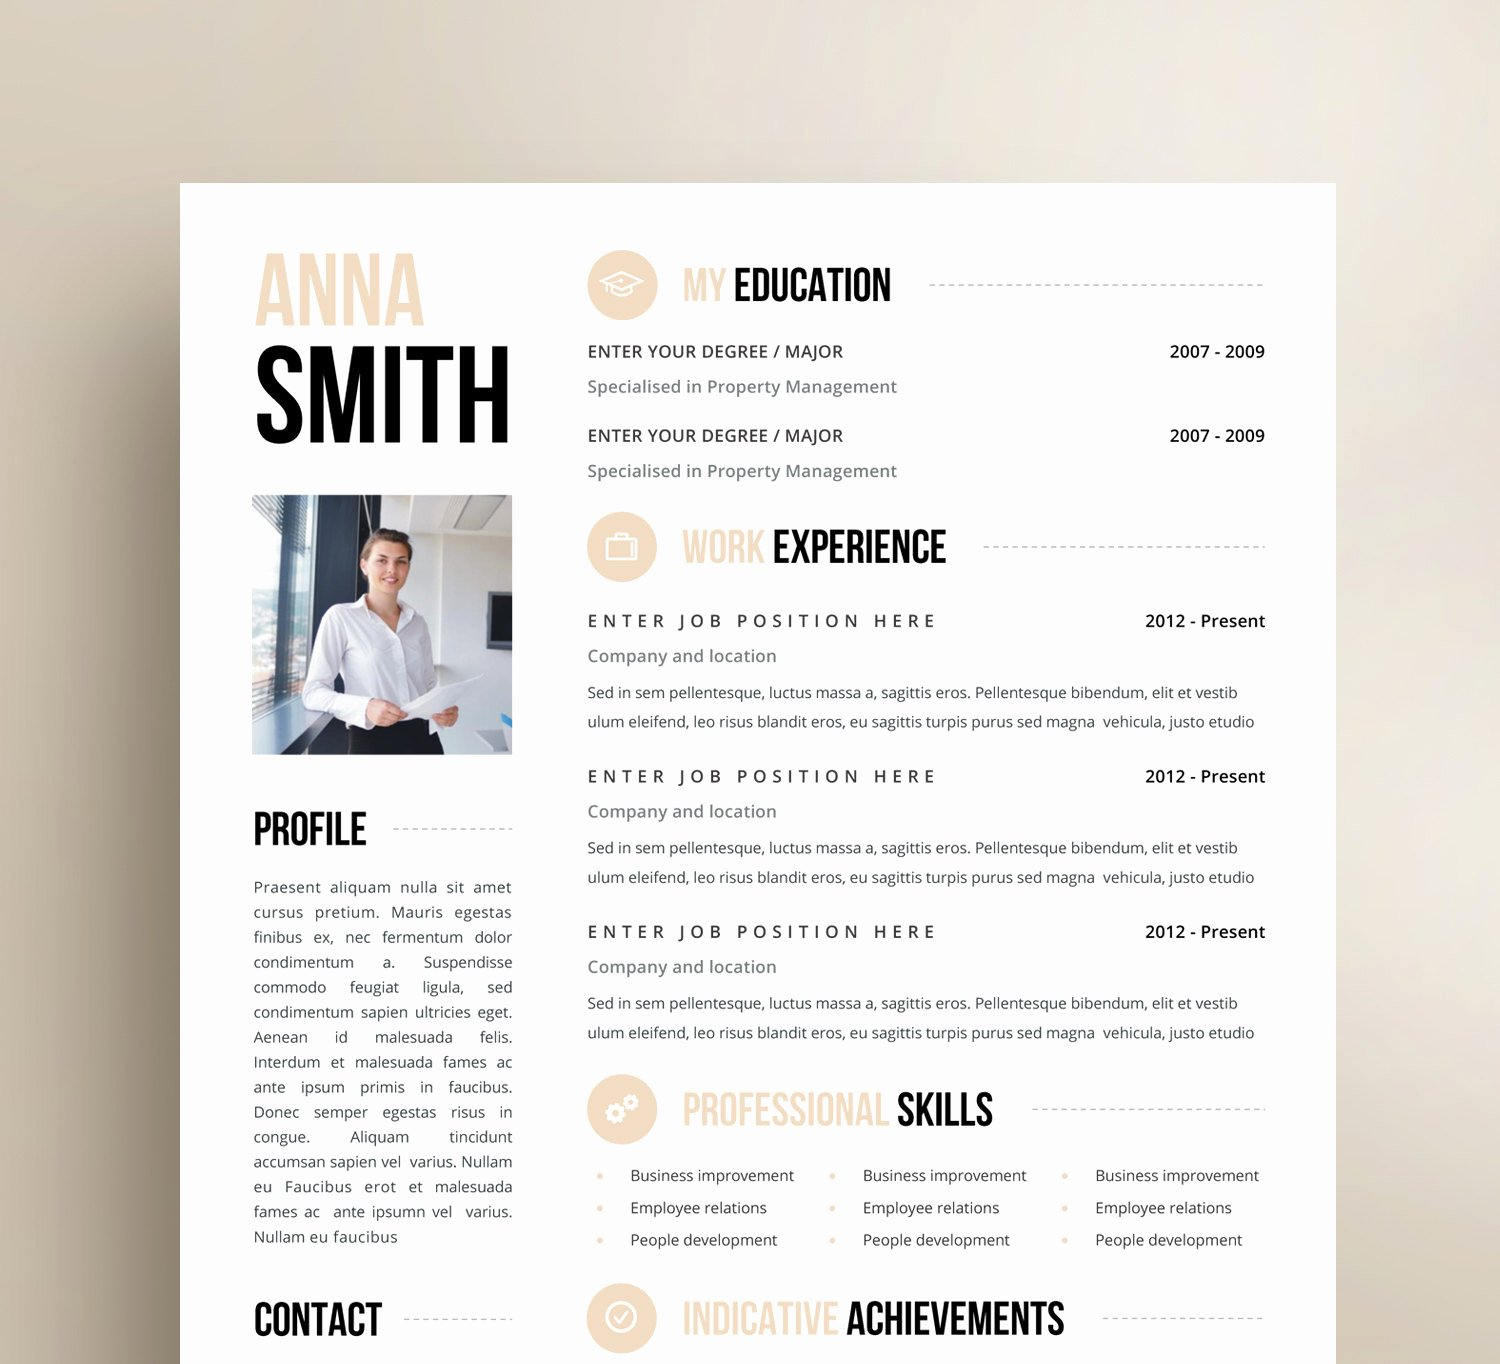 One Page Resume Template Free Awesome Inspiration Minimalist Resume Template Word Free with E Page Resume Template Free E Page